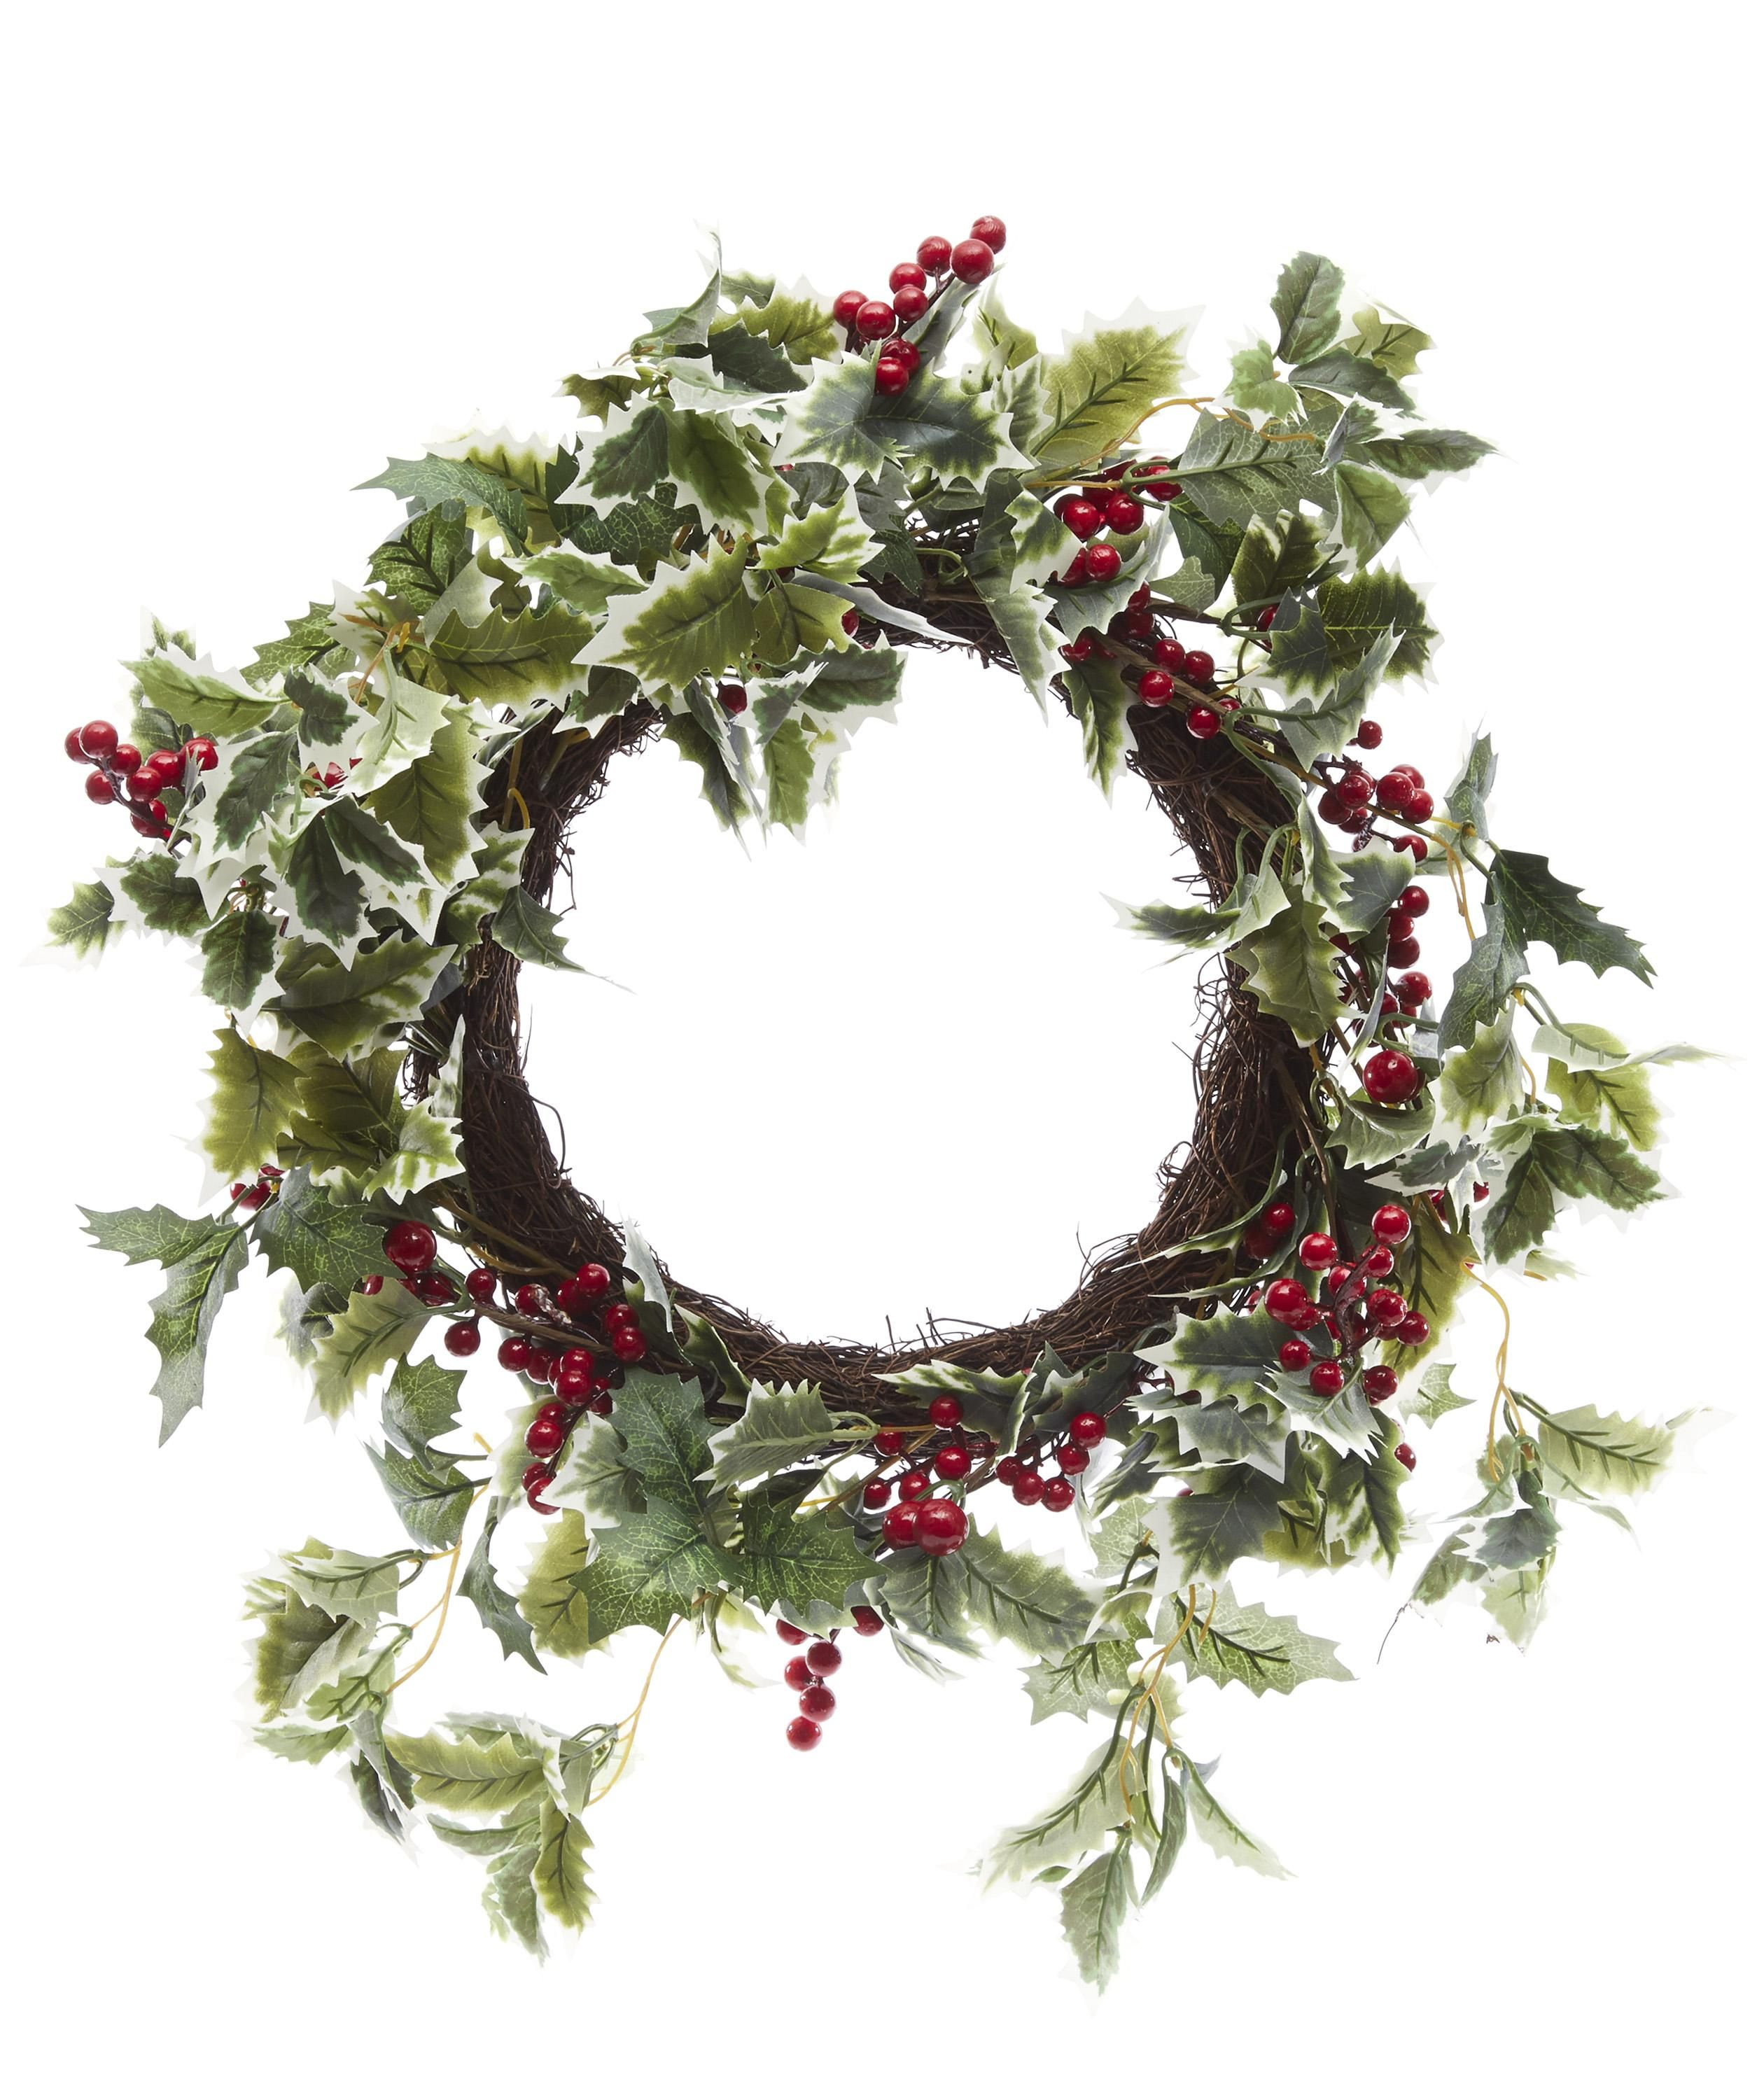 Best Christmas Wreaths - Christmas Door Wreaths